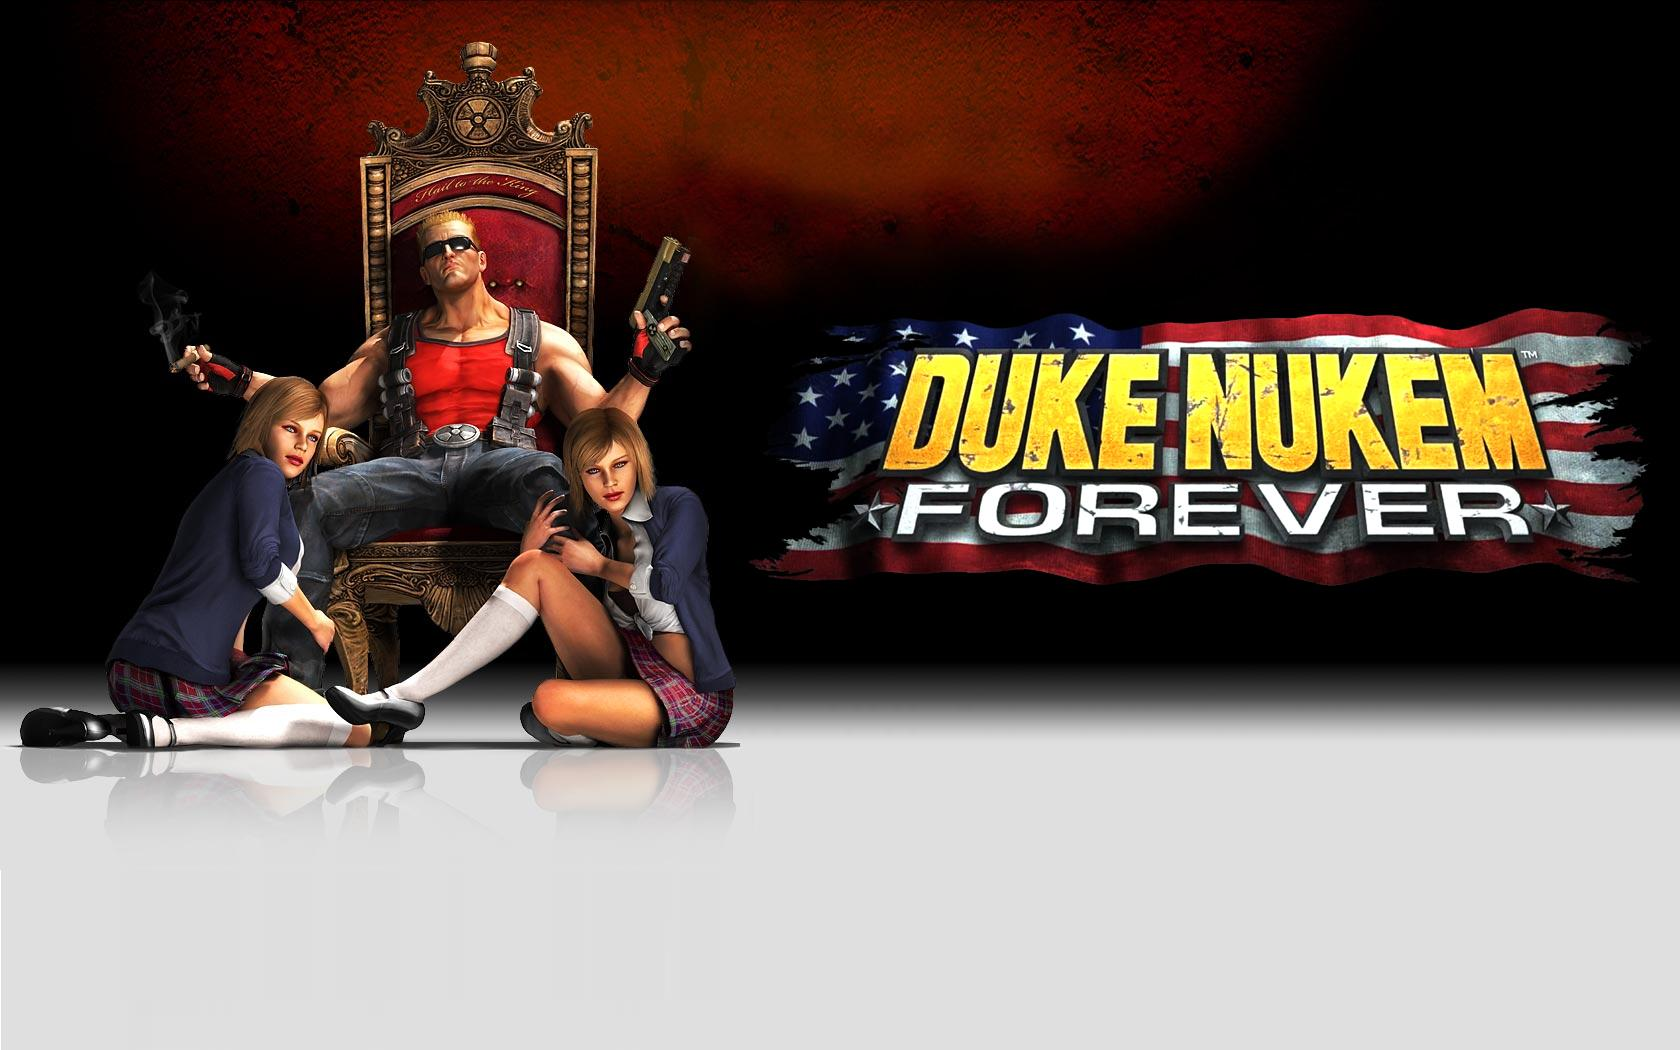 Nuevo Trailer de Duke Nukem Forever, con strippers, acción y gore [Come get some]